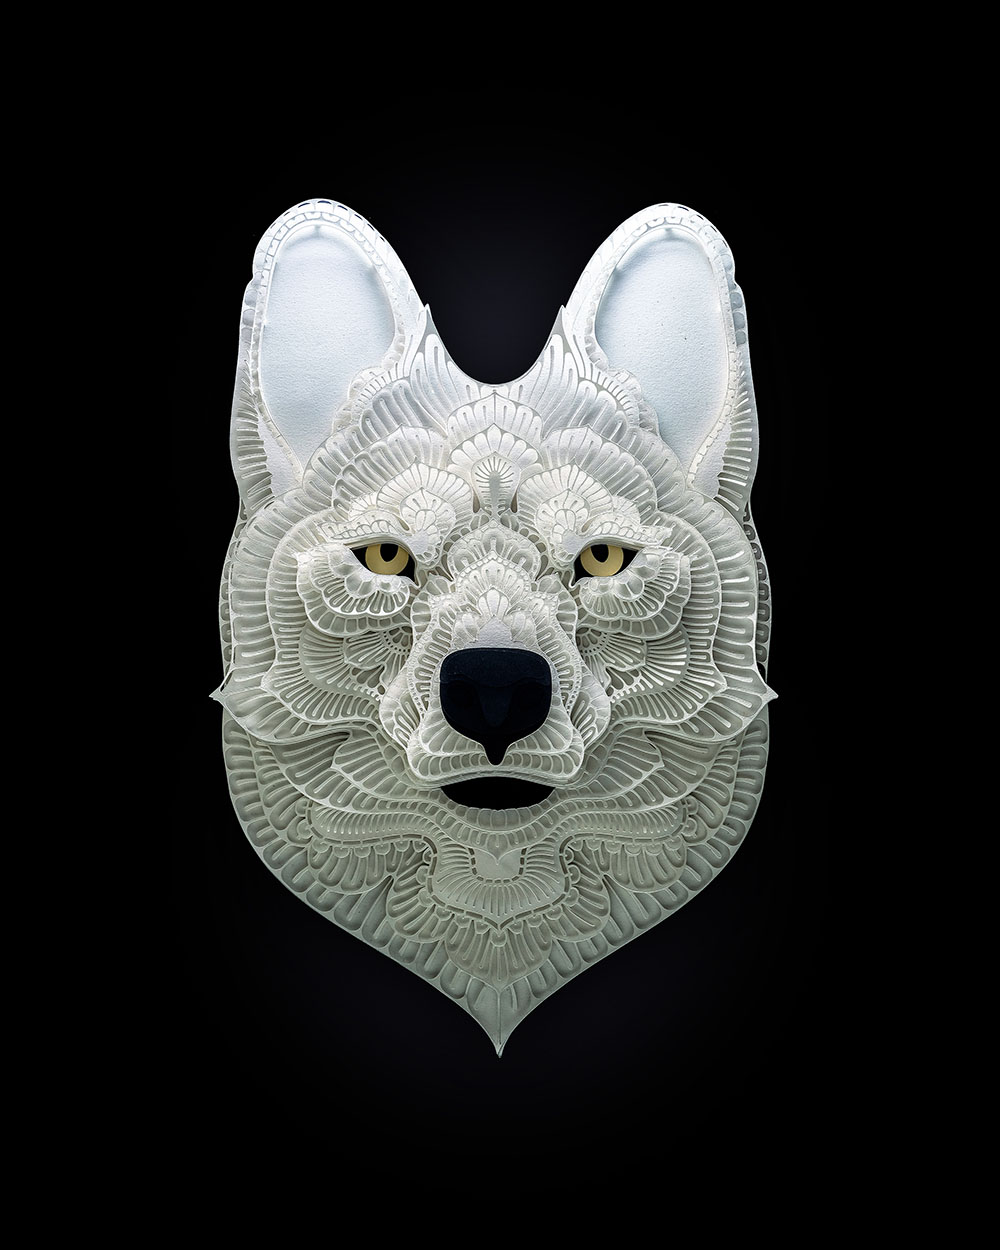 paper sculpture art wolf patrick cabral